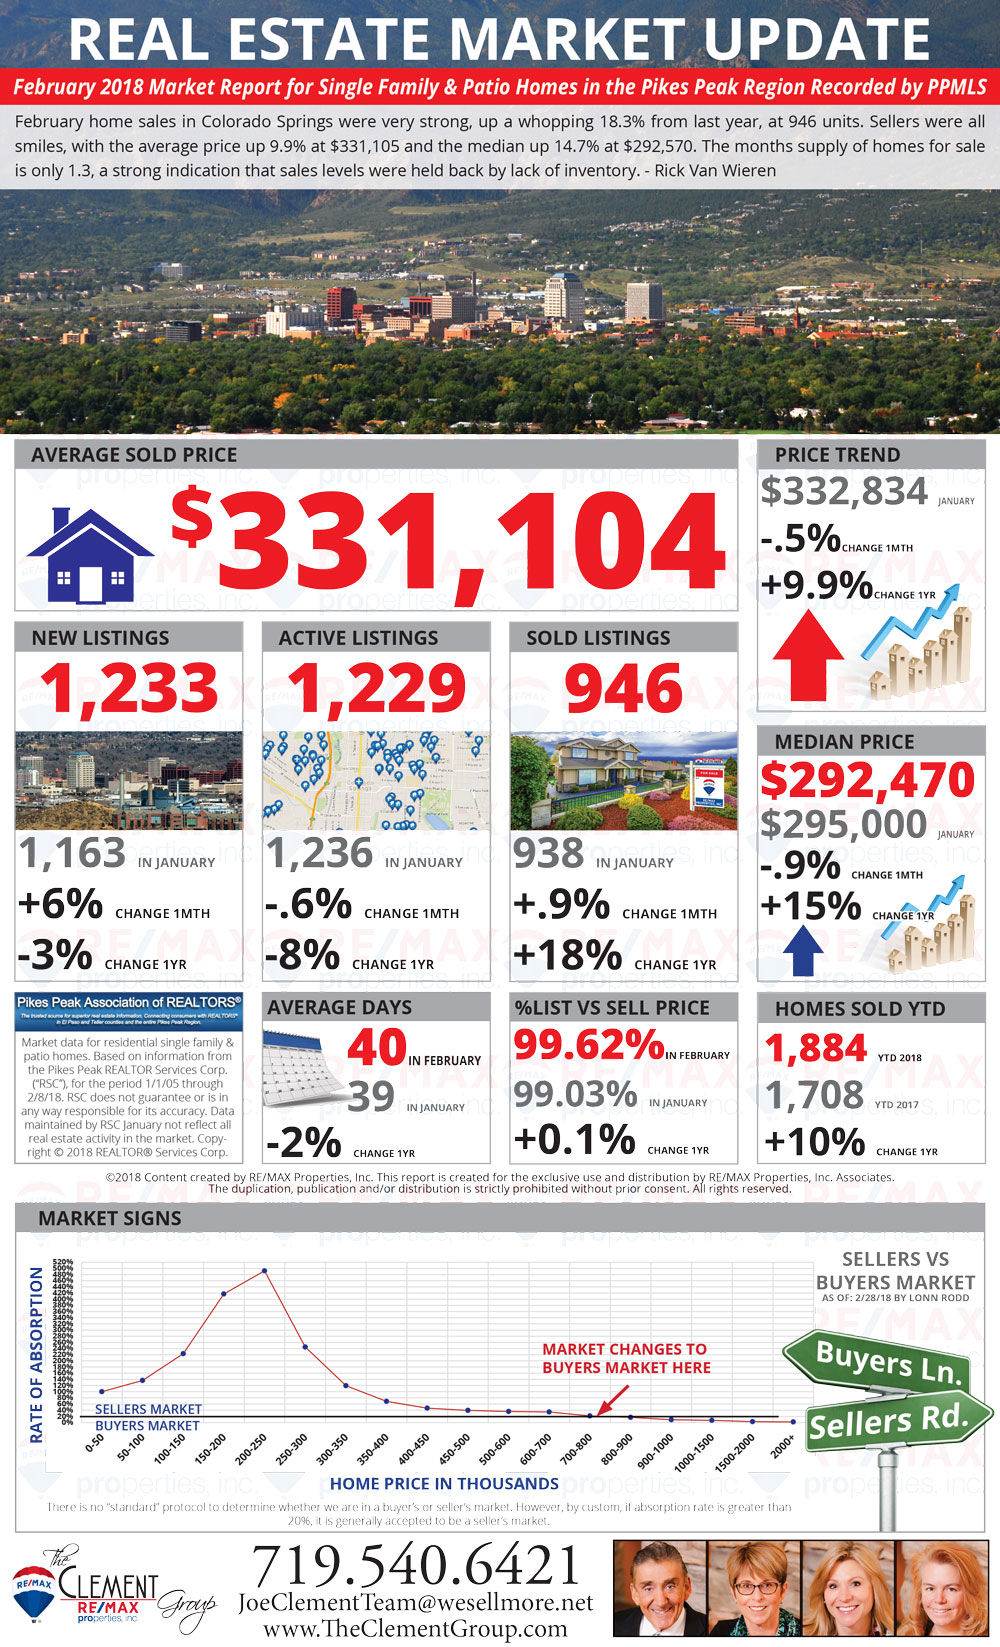 February 2018 Market Update - Colorado Springs Real Estate